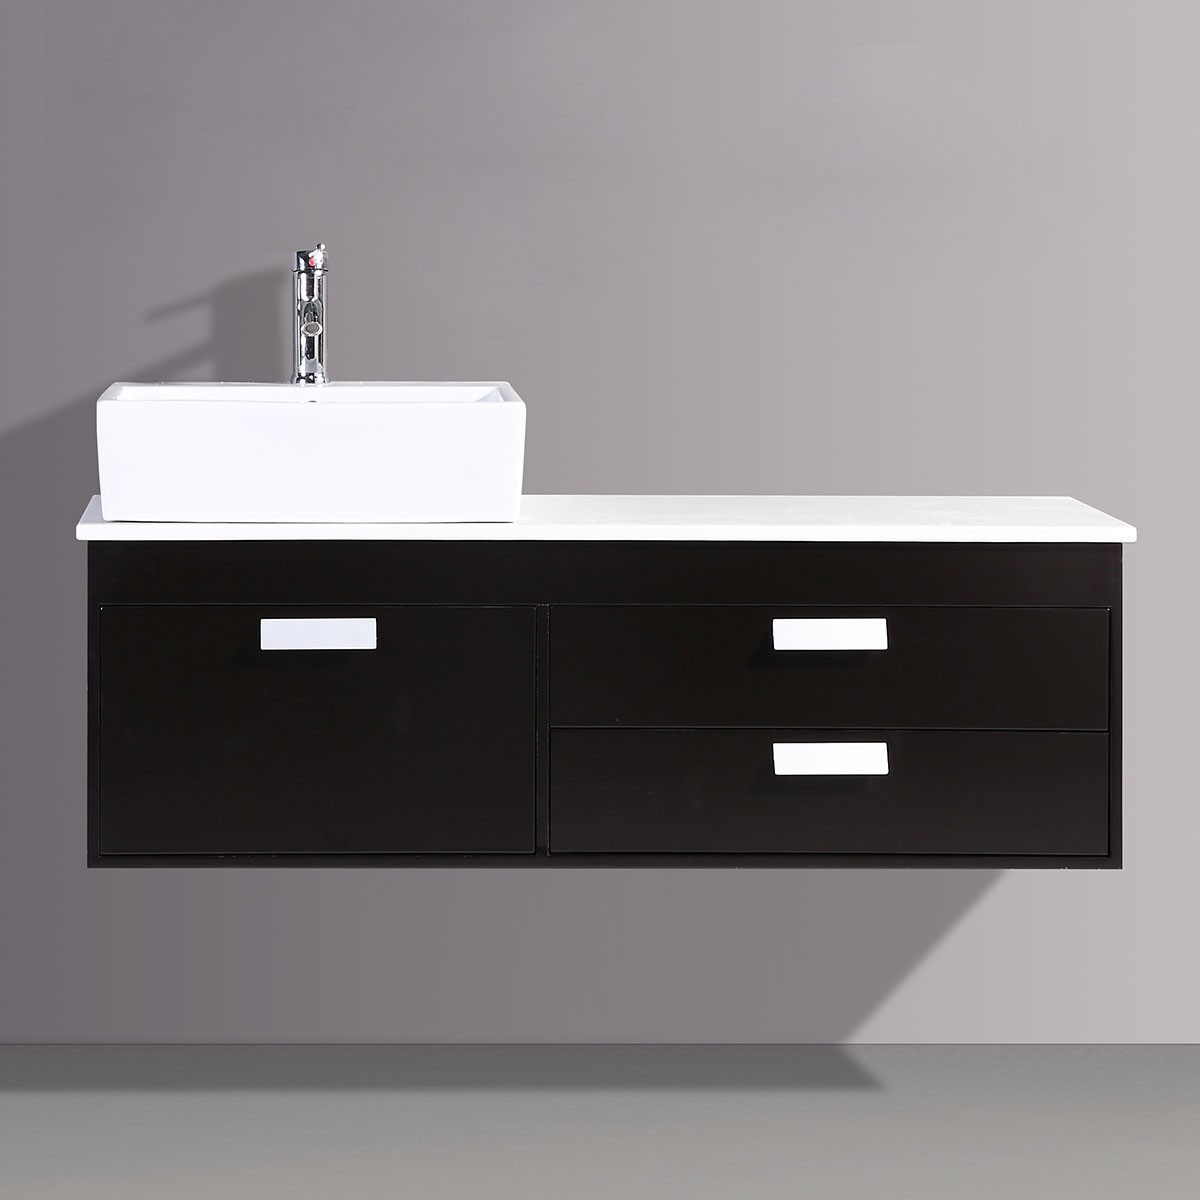 51 In. Espresso Wall-Mount Vanity with Polymarble Top and Ceramic Basin (DK-T9099B-V)